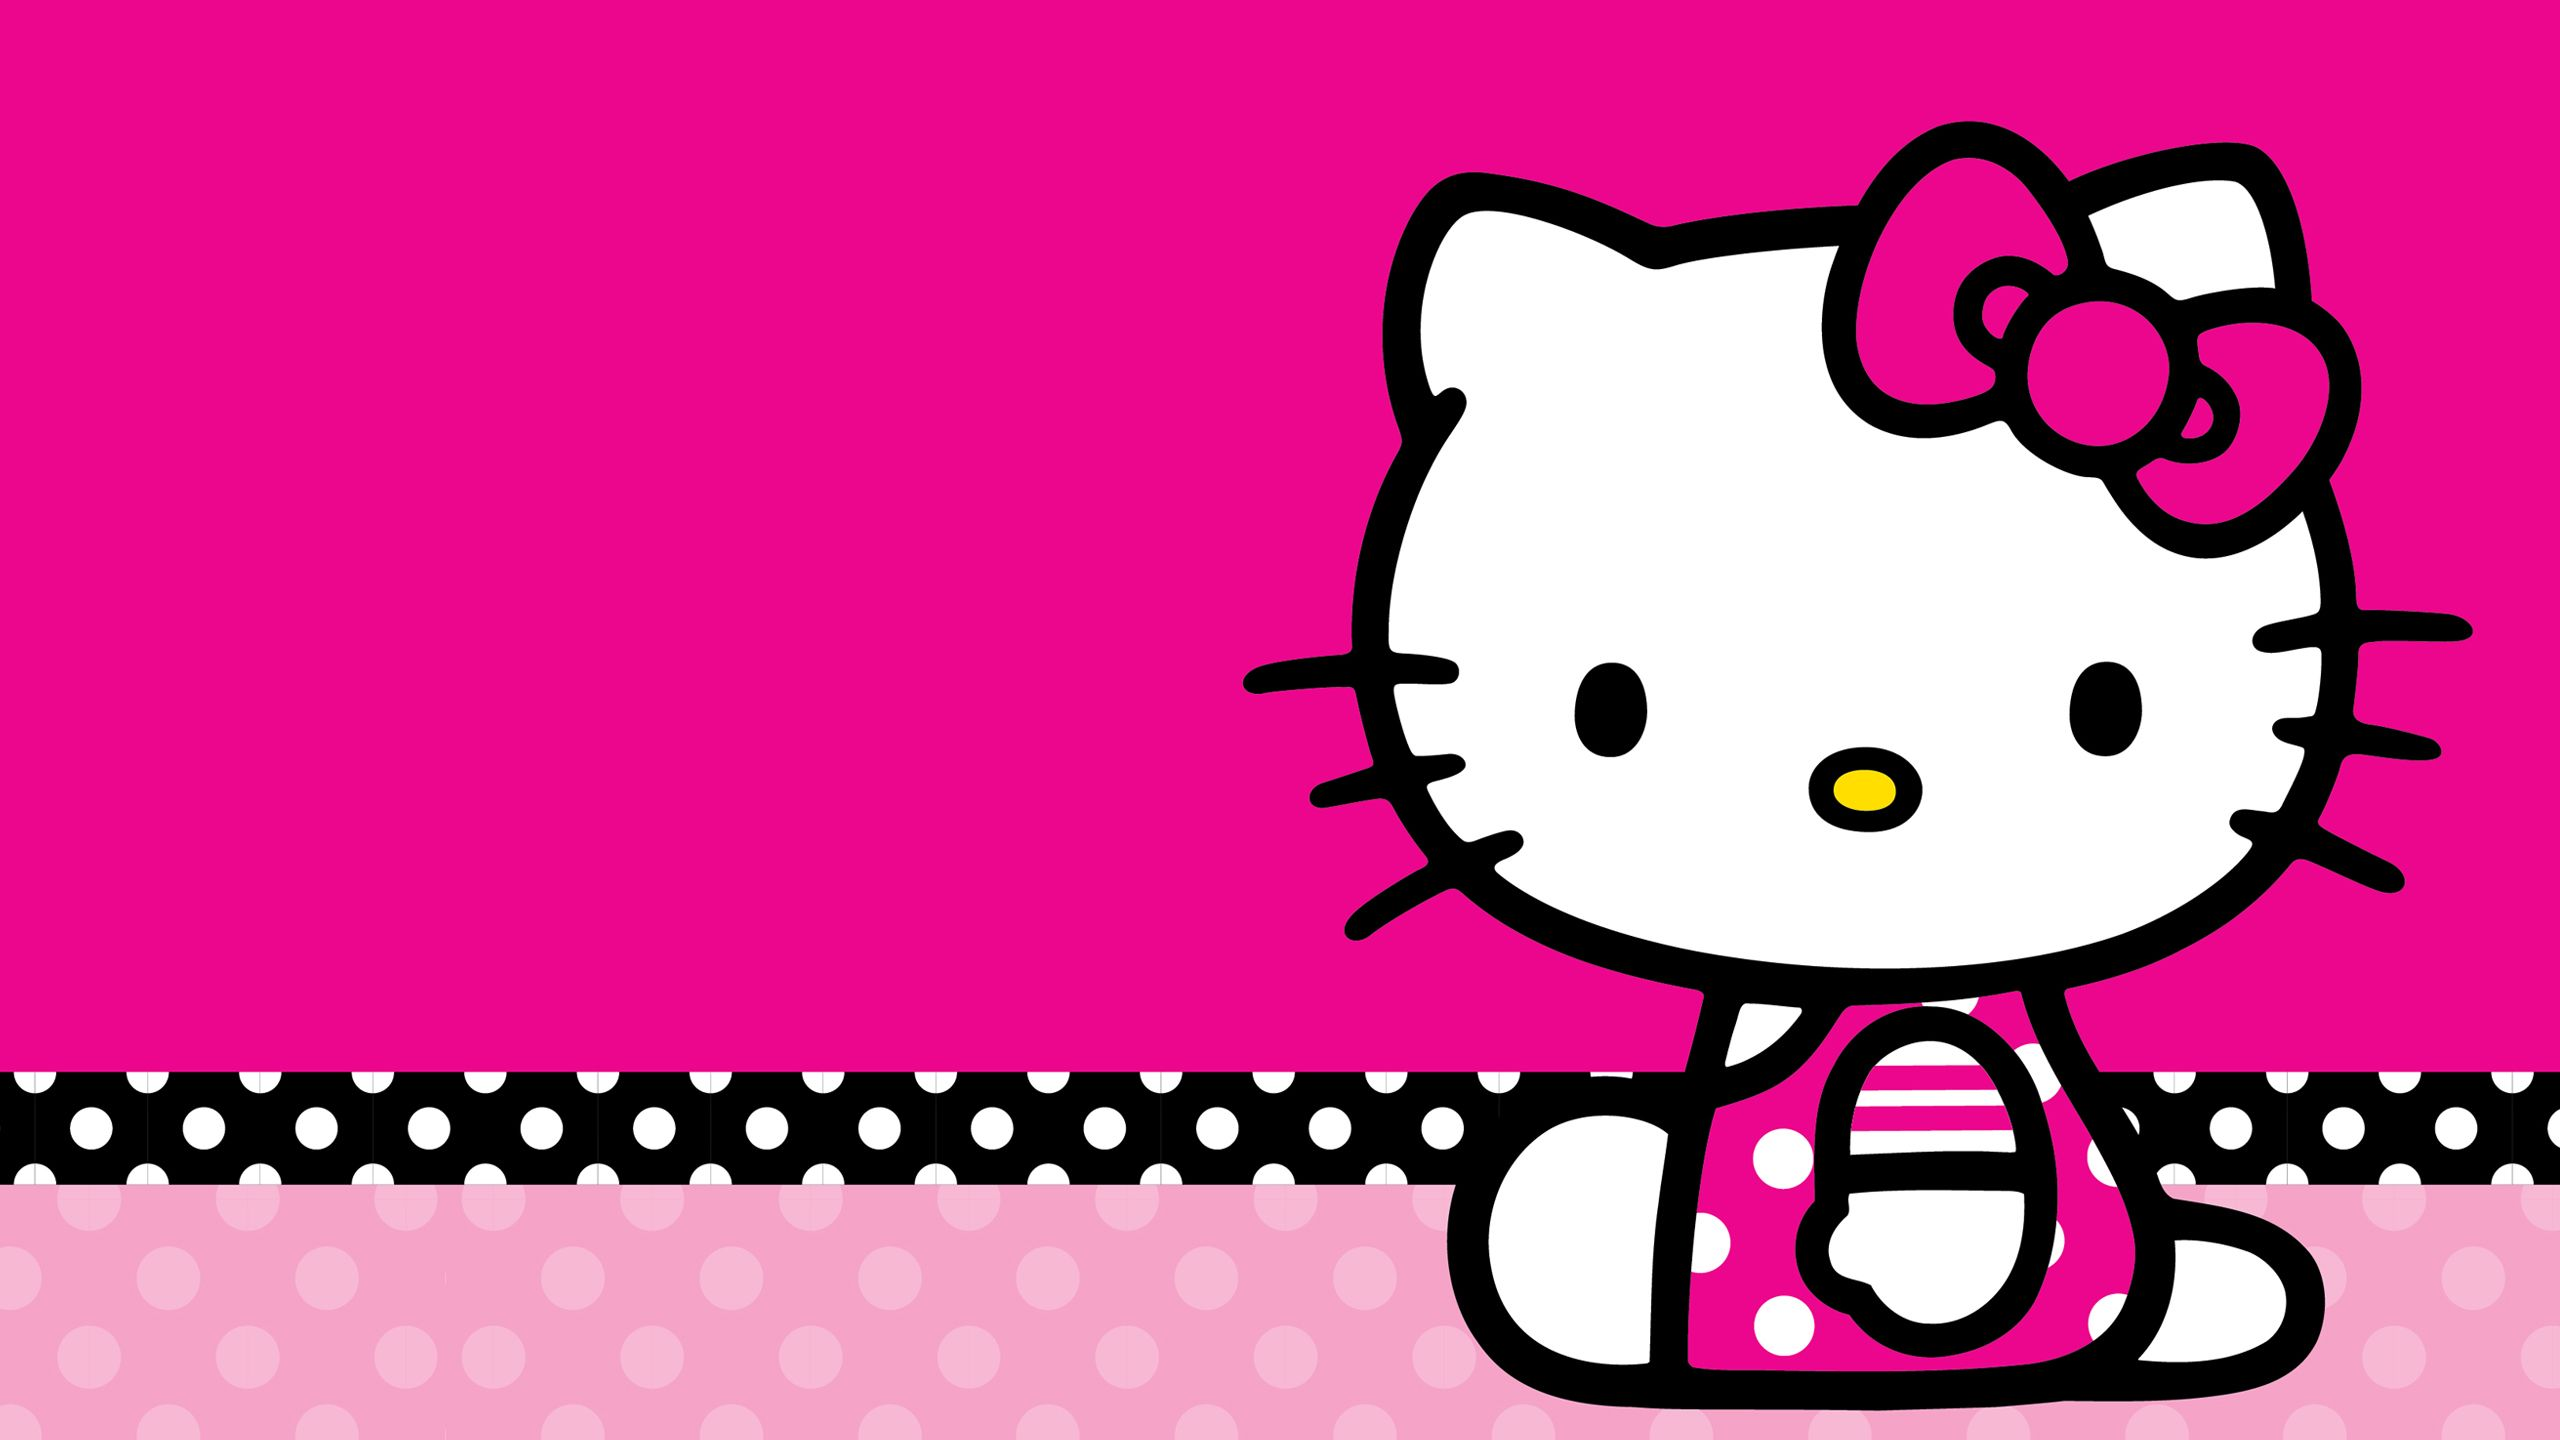 Hello Kitty Backgrounds Png.